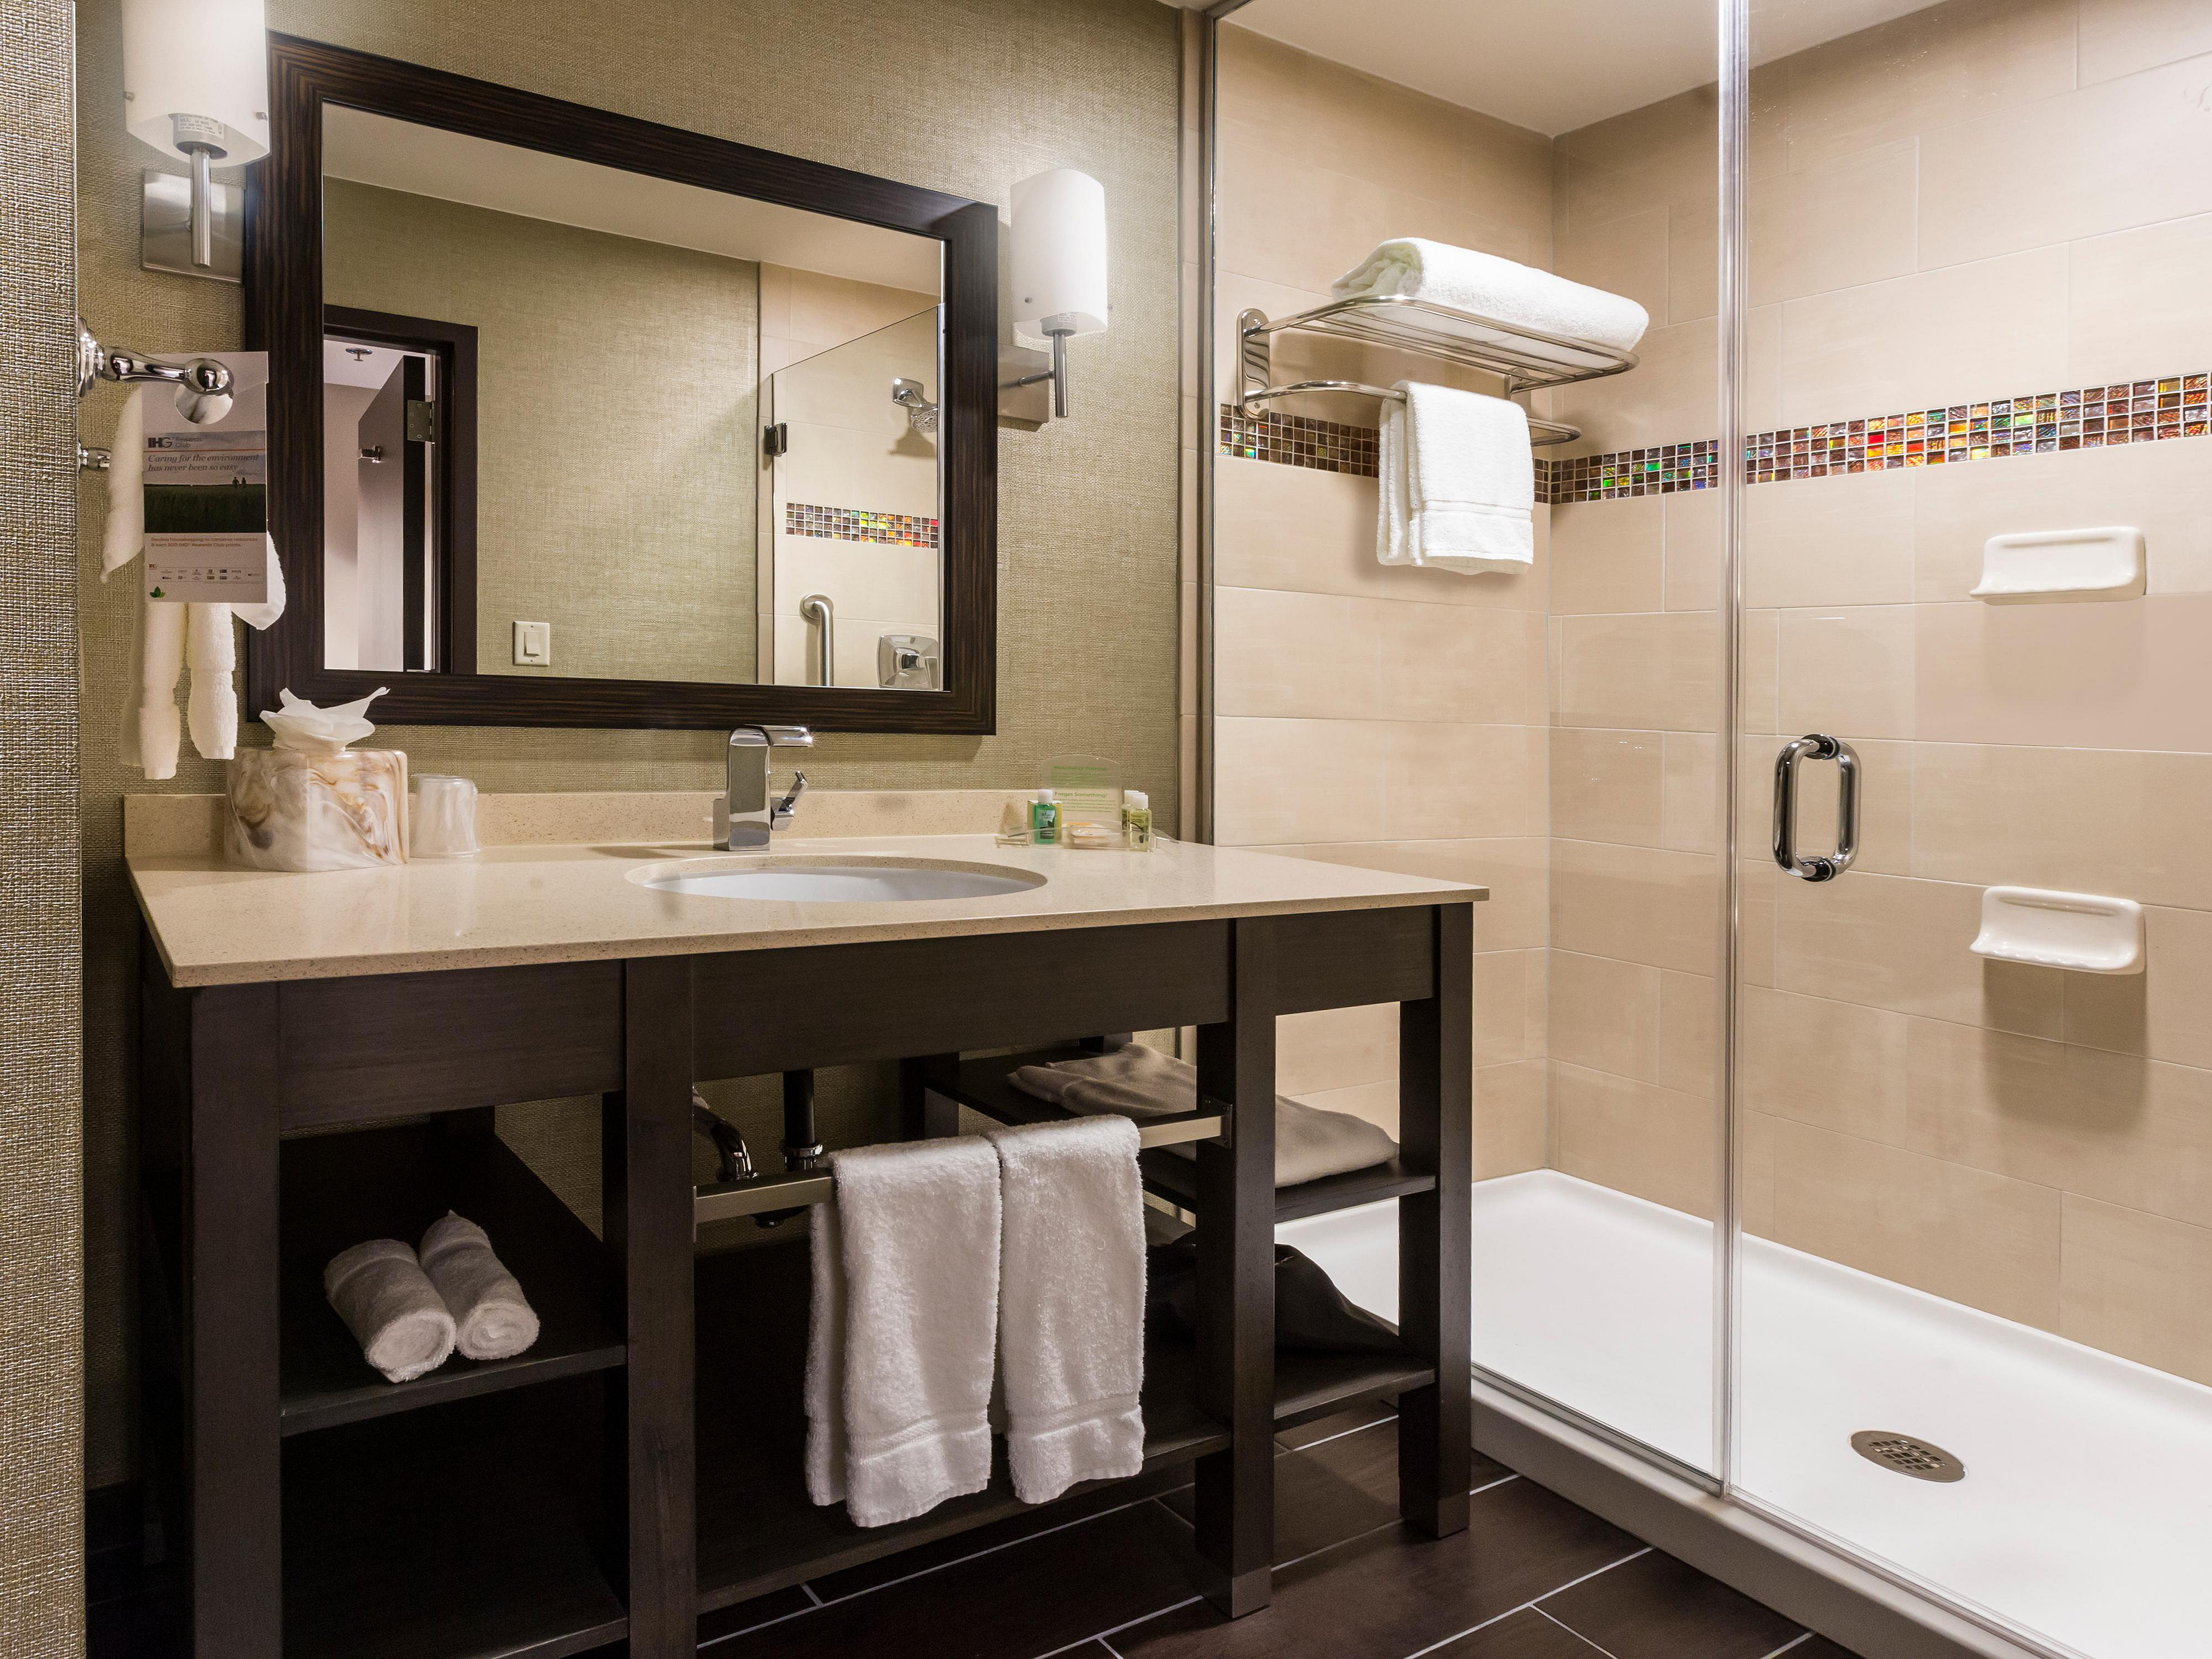 holiday-inn-hotel-and-suites-shenandoah-4690333484-4x3